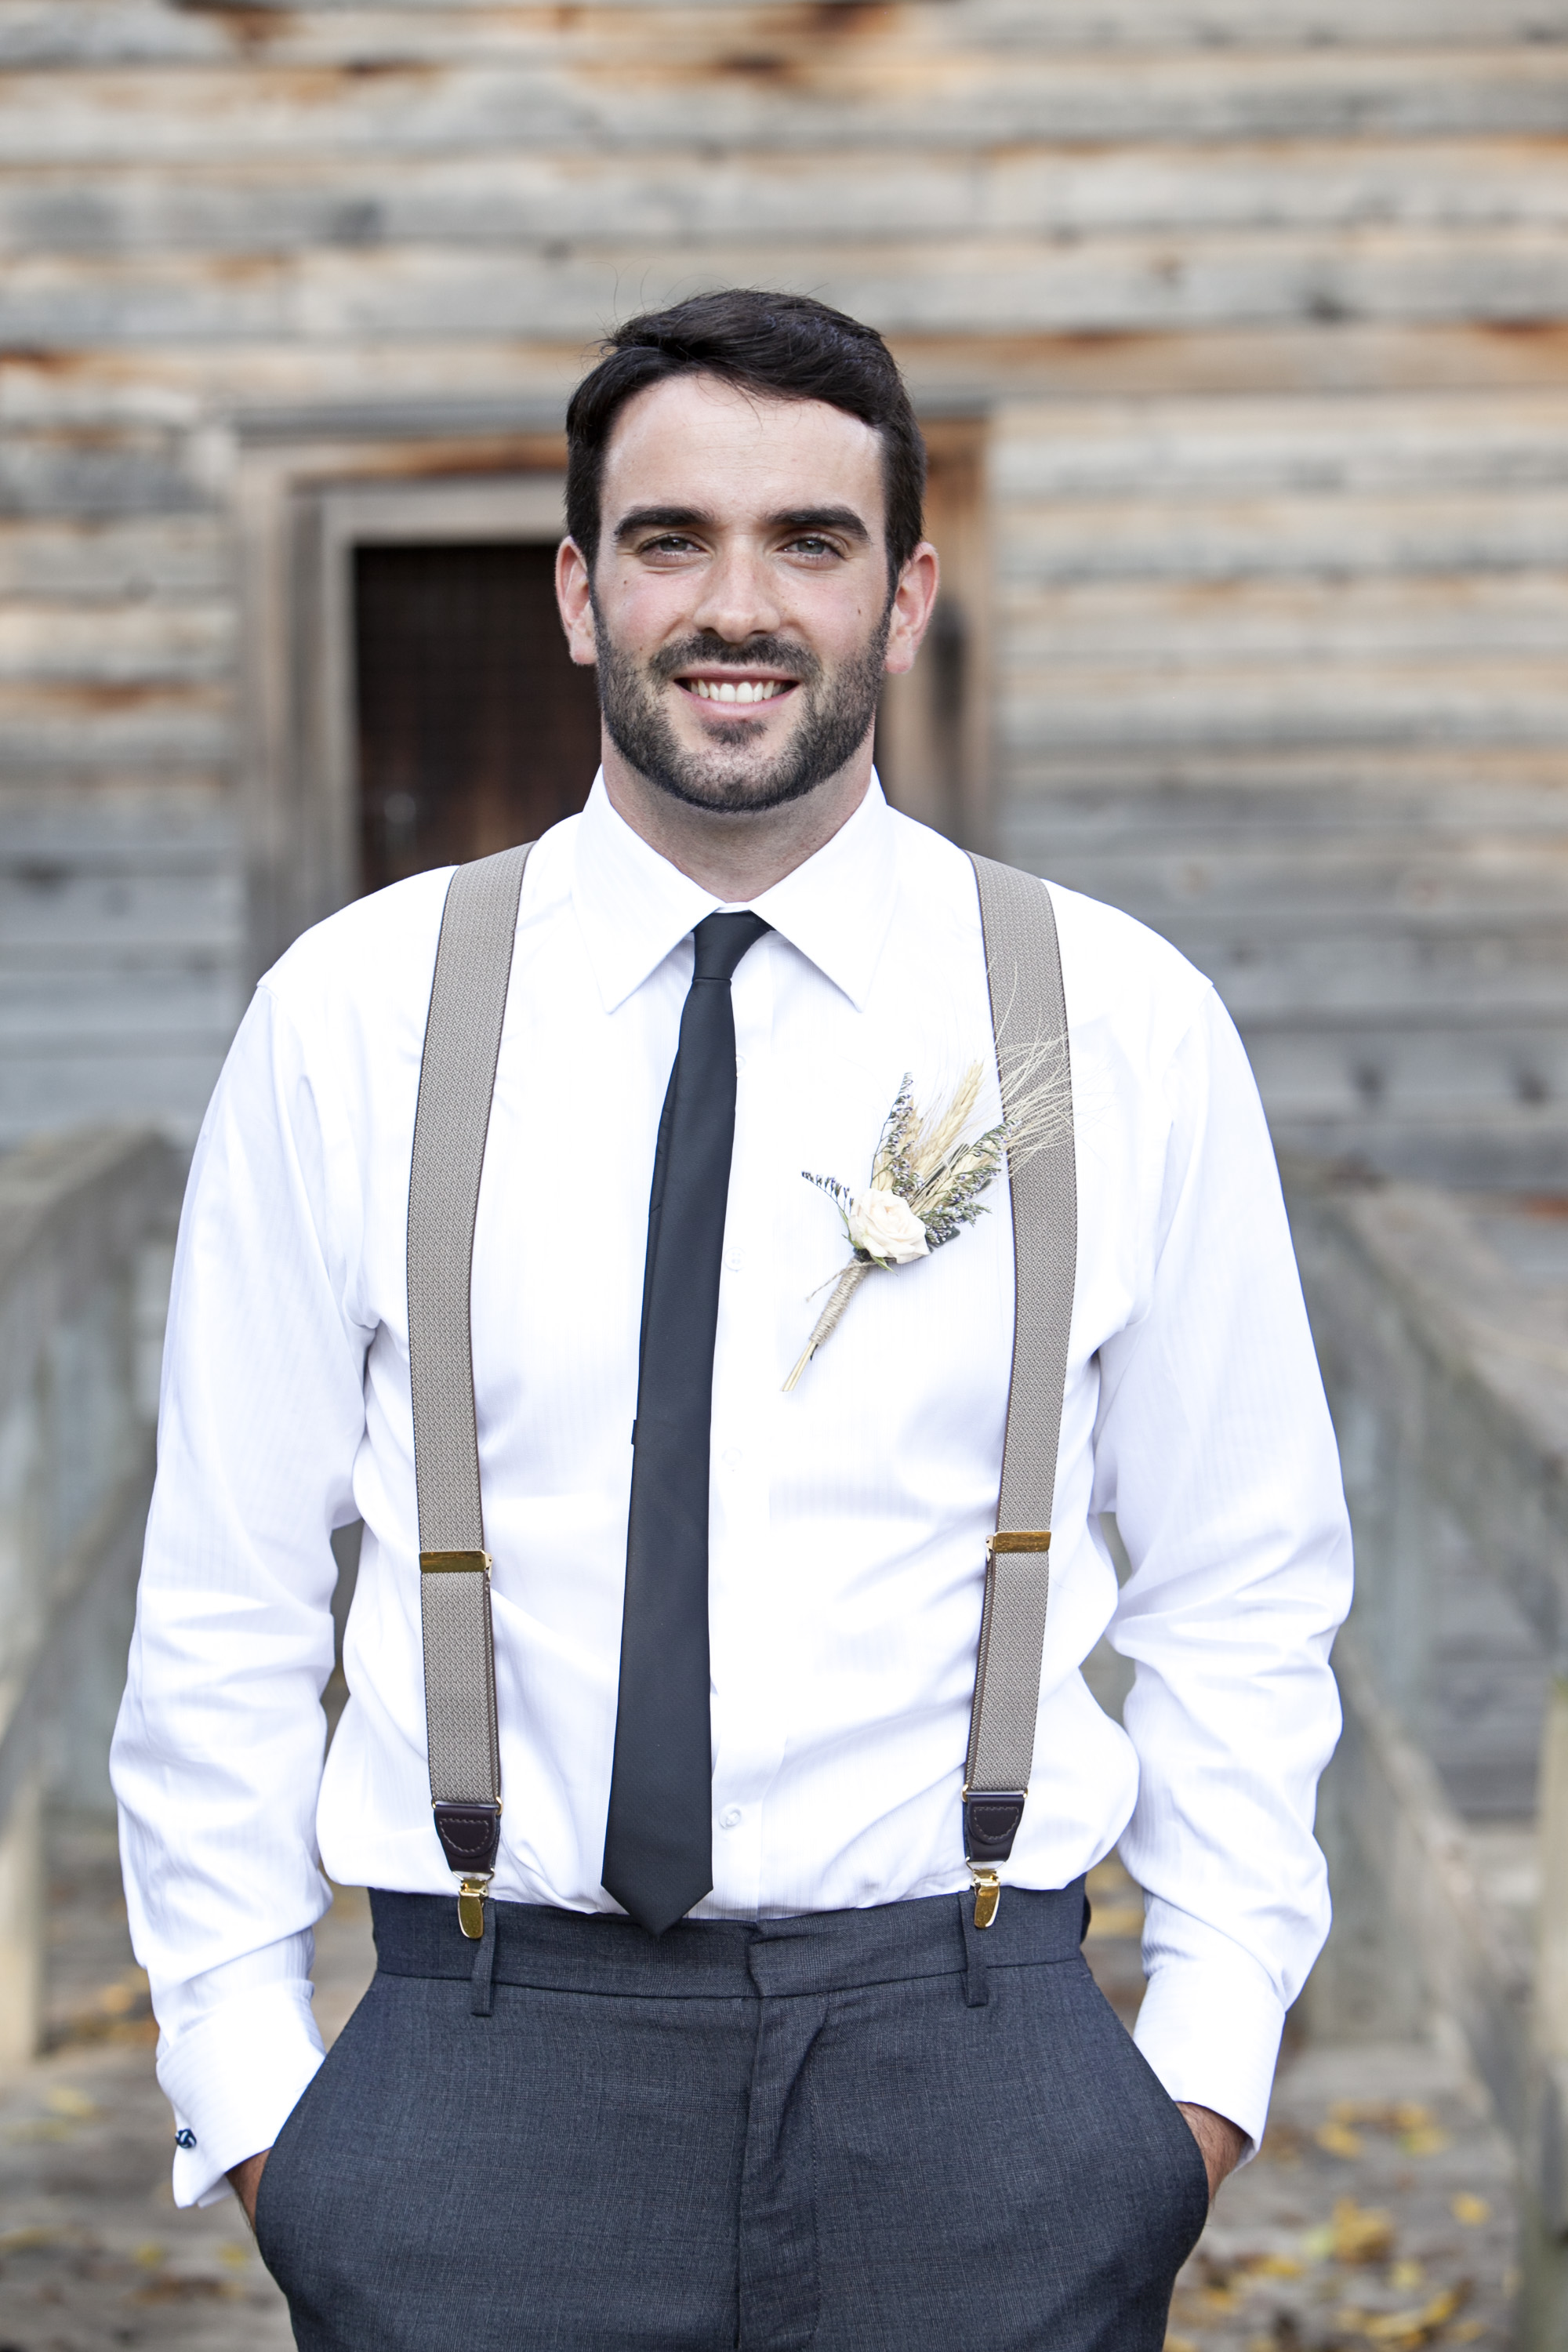 Stylish groom at Ball's Falls wedding in Niagara